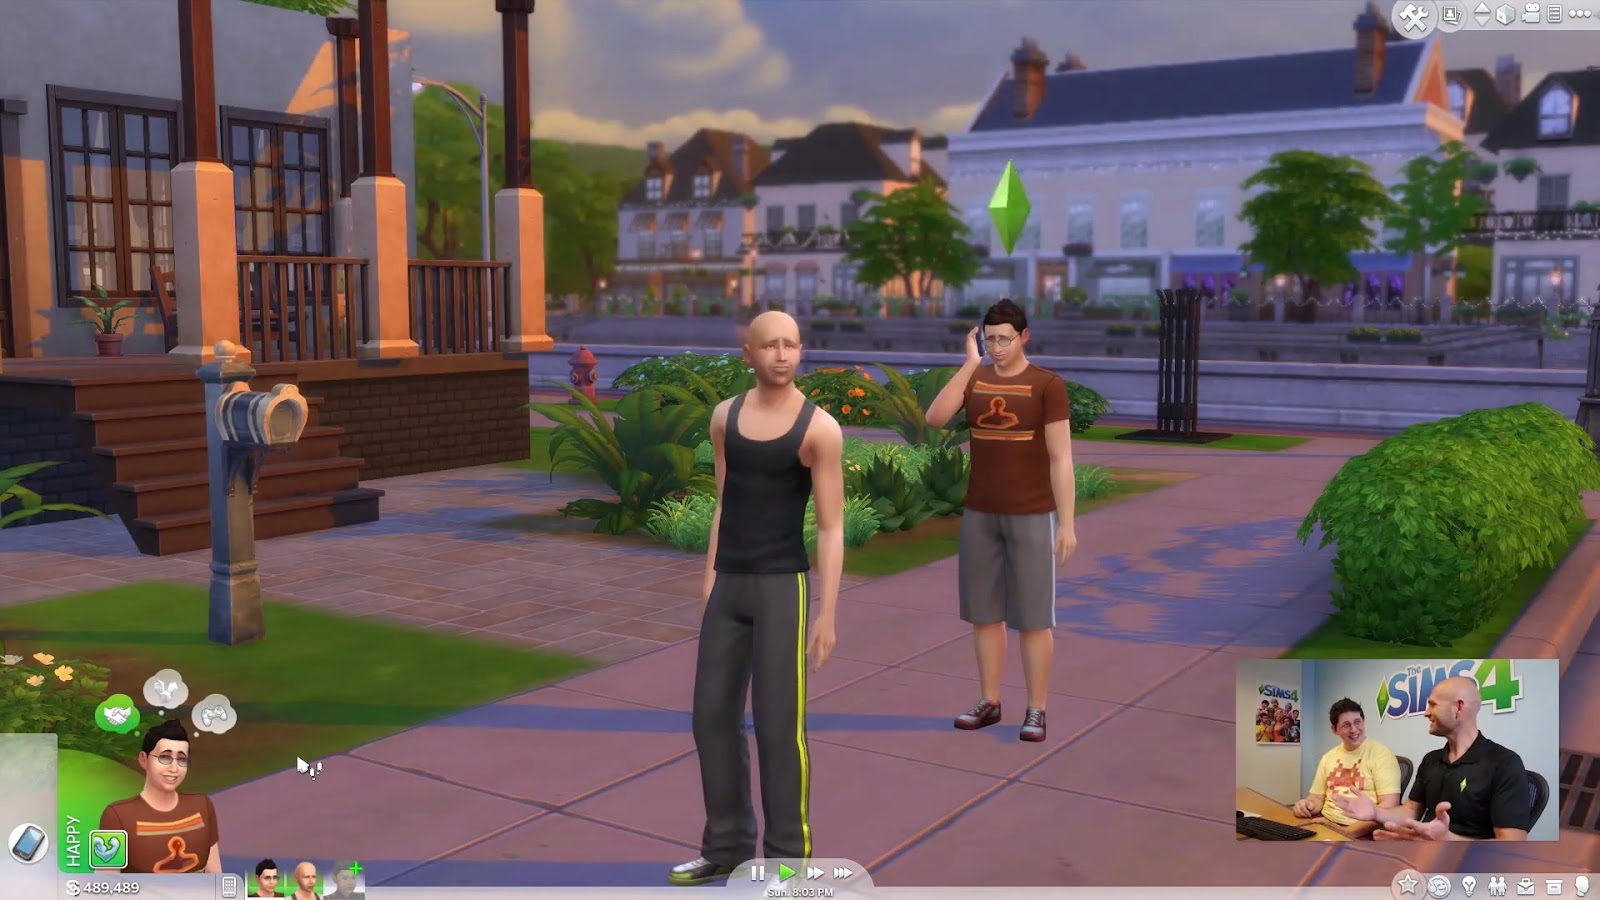 Sims Online Multiplayer 5 Most Disappointing Games Of 2014 3 The Sims 4